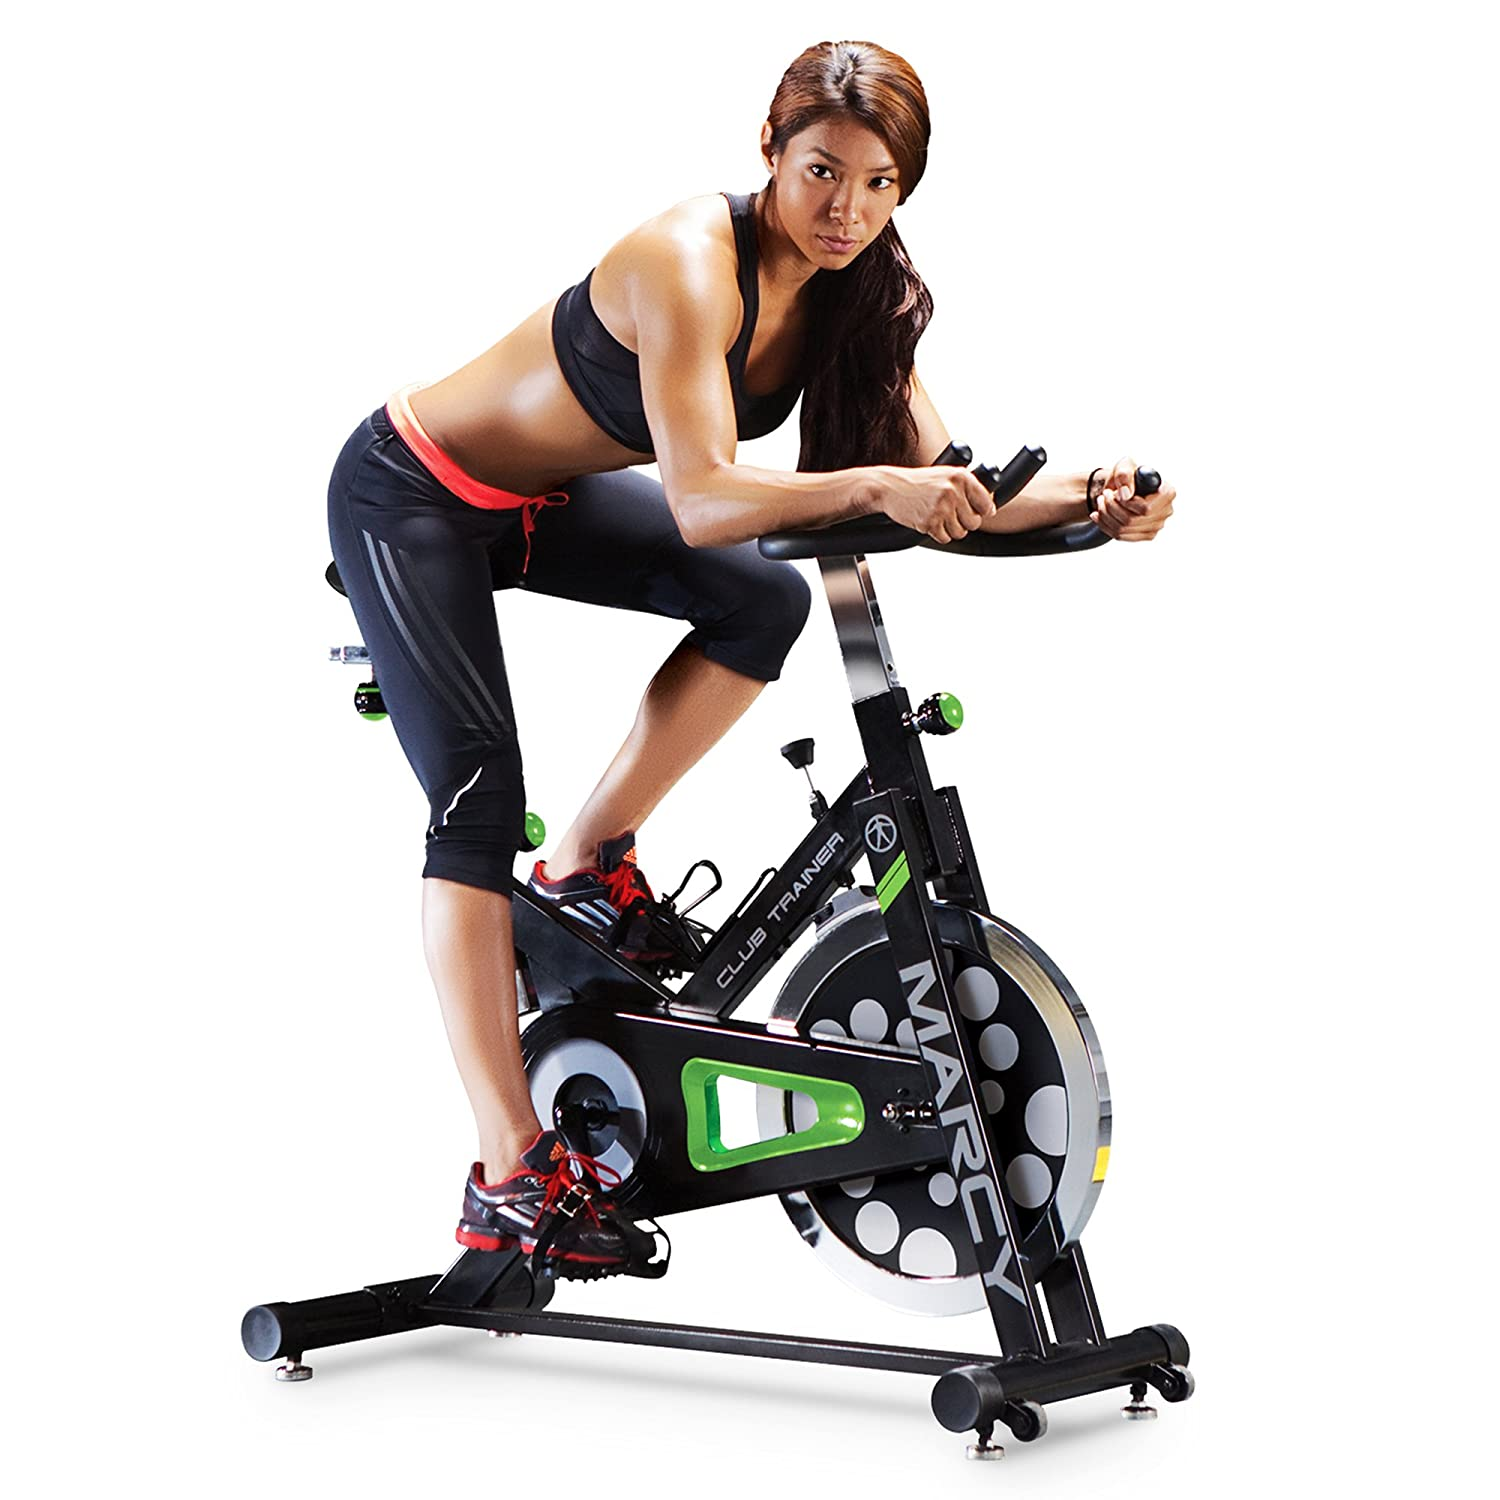 Amazon.com : Marcy Club Revolution Bike Cycle Trainer for Cardio Exercise  XJ-3220 : Exercise Equipment : Sports & Outdoors